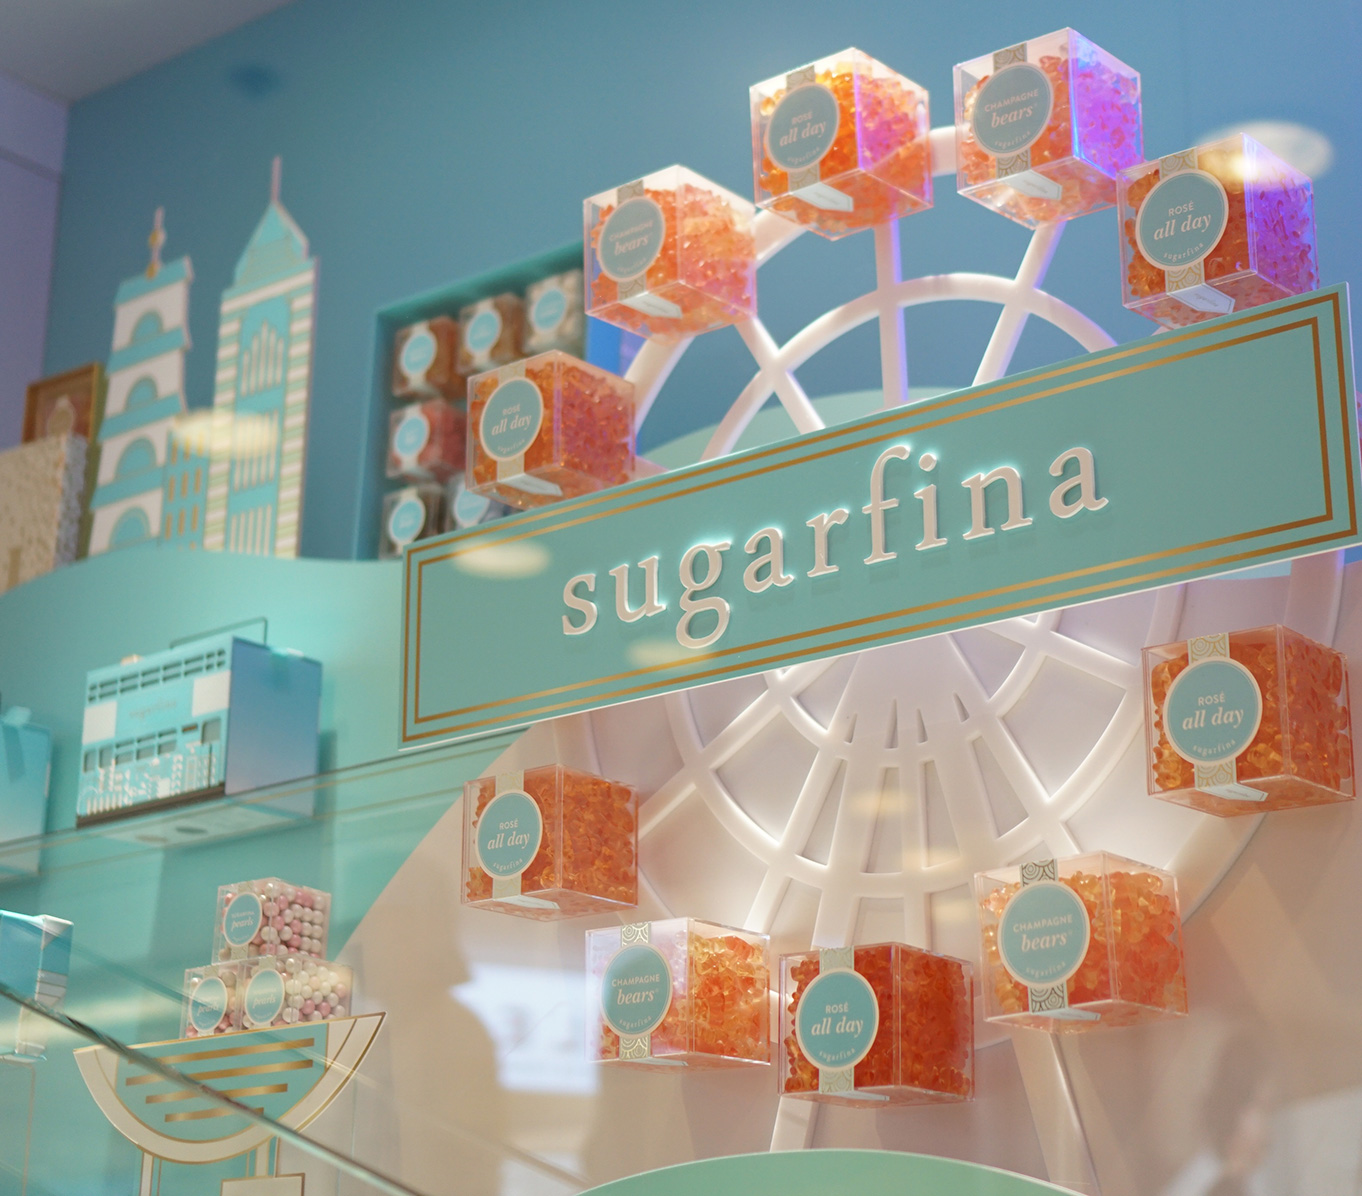 http://www.hot-kisser.com/wp-content/uploads/2019/05/20180718-Sugarfina-VM-Thumbnail.jpg